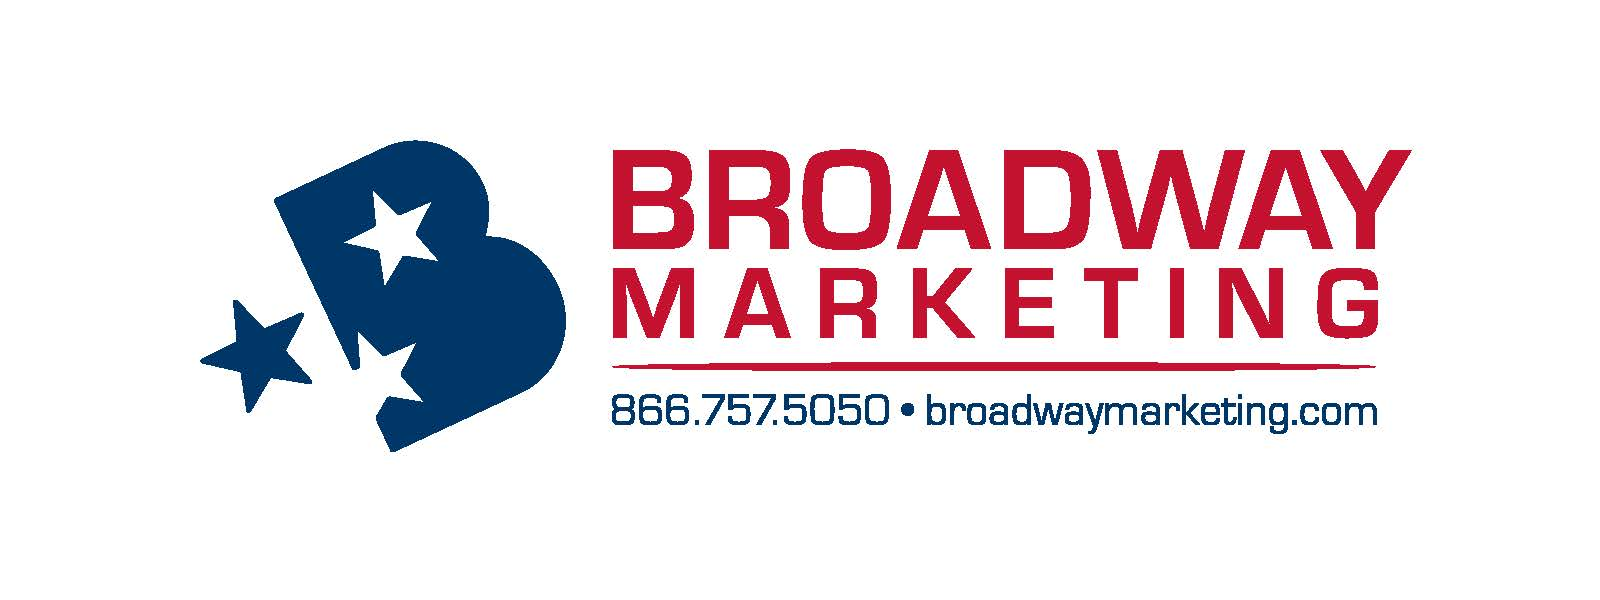 Broadway Marketing Logo